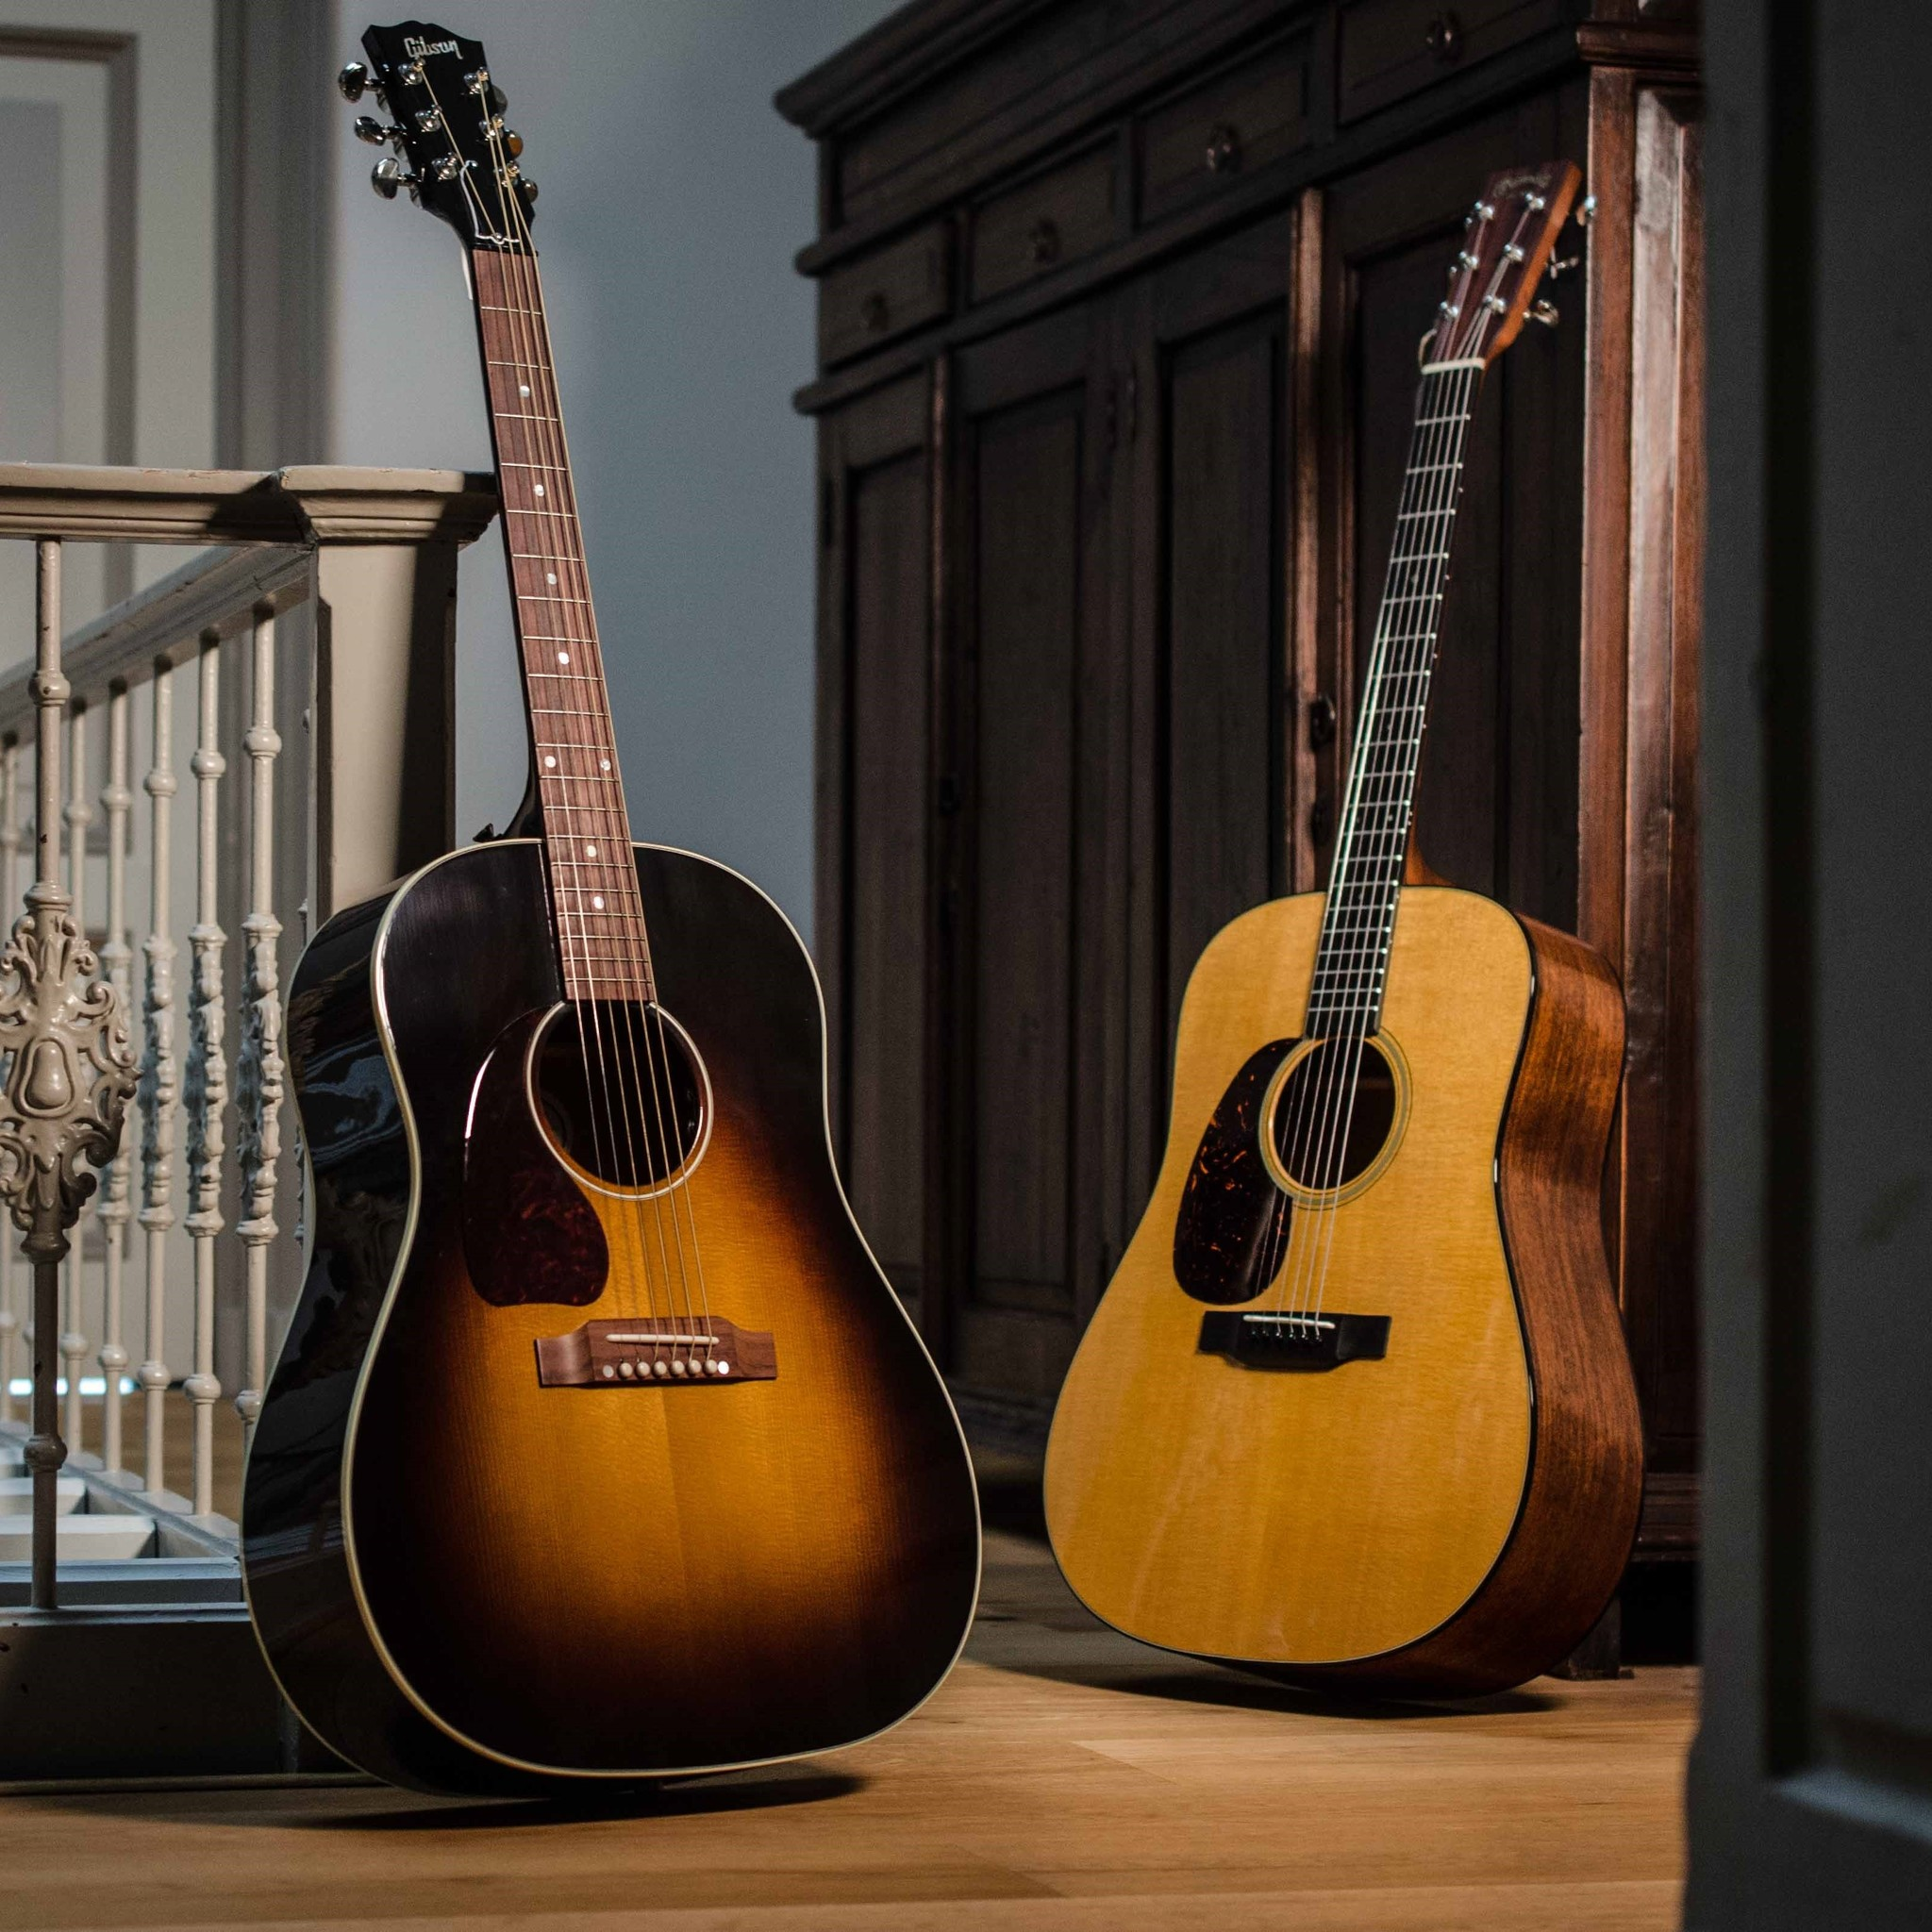 The Gibson J45 or the Martin D18?